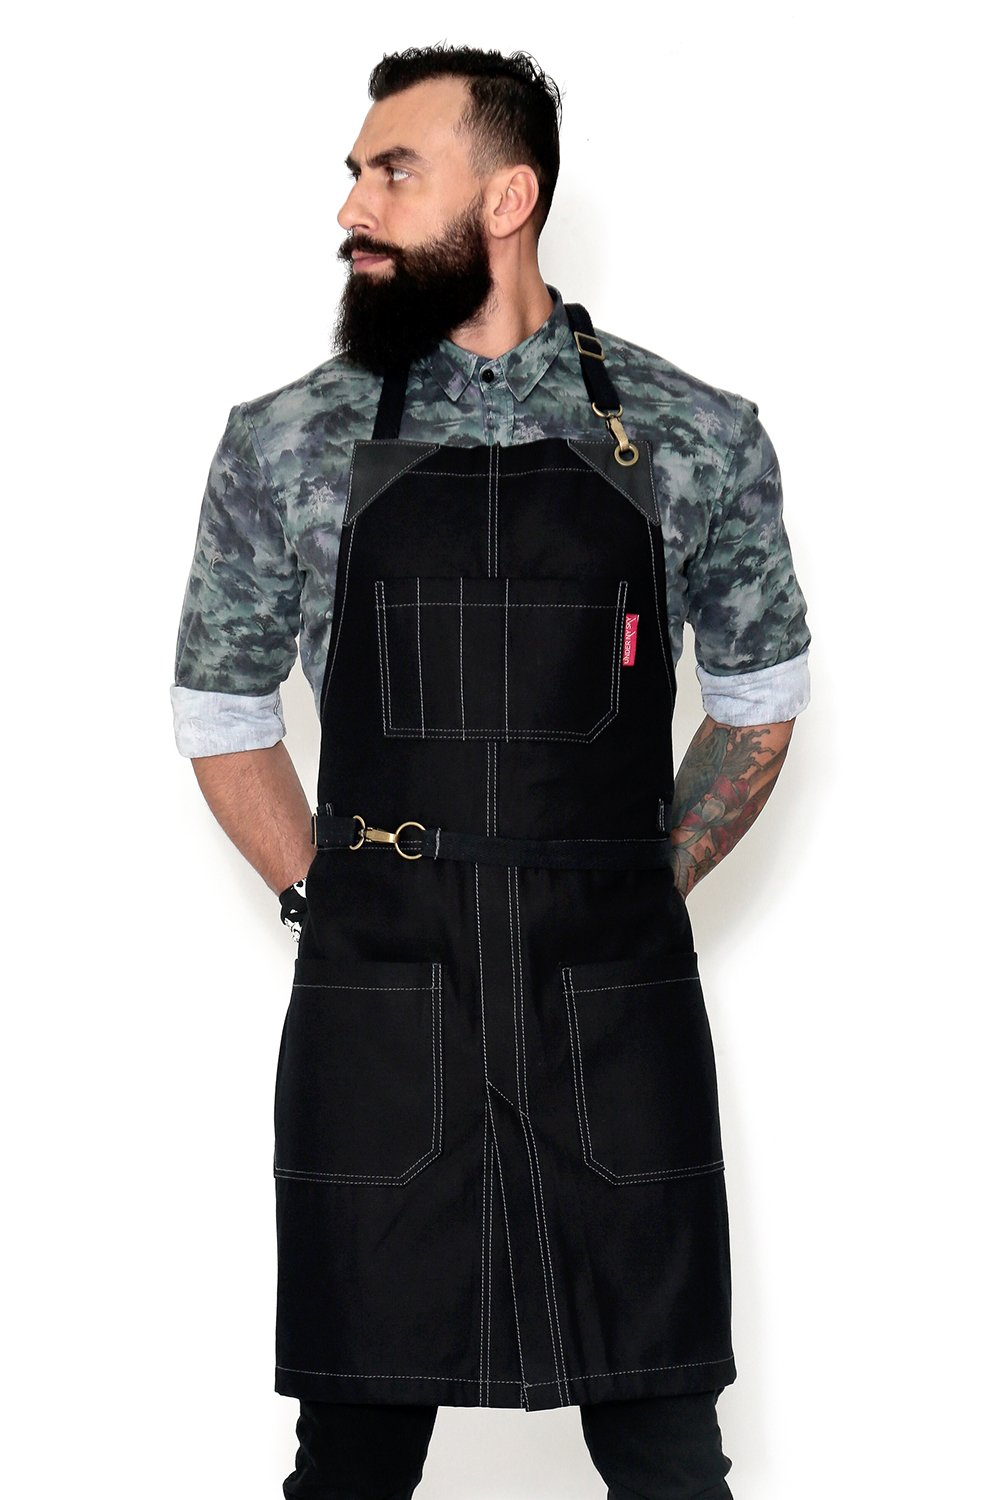 Under NY Sky No-Tie Apron - Opaque Black Twill - Black Leather - Towel Loop and Split-Leg by Under NY Sky